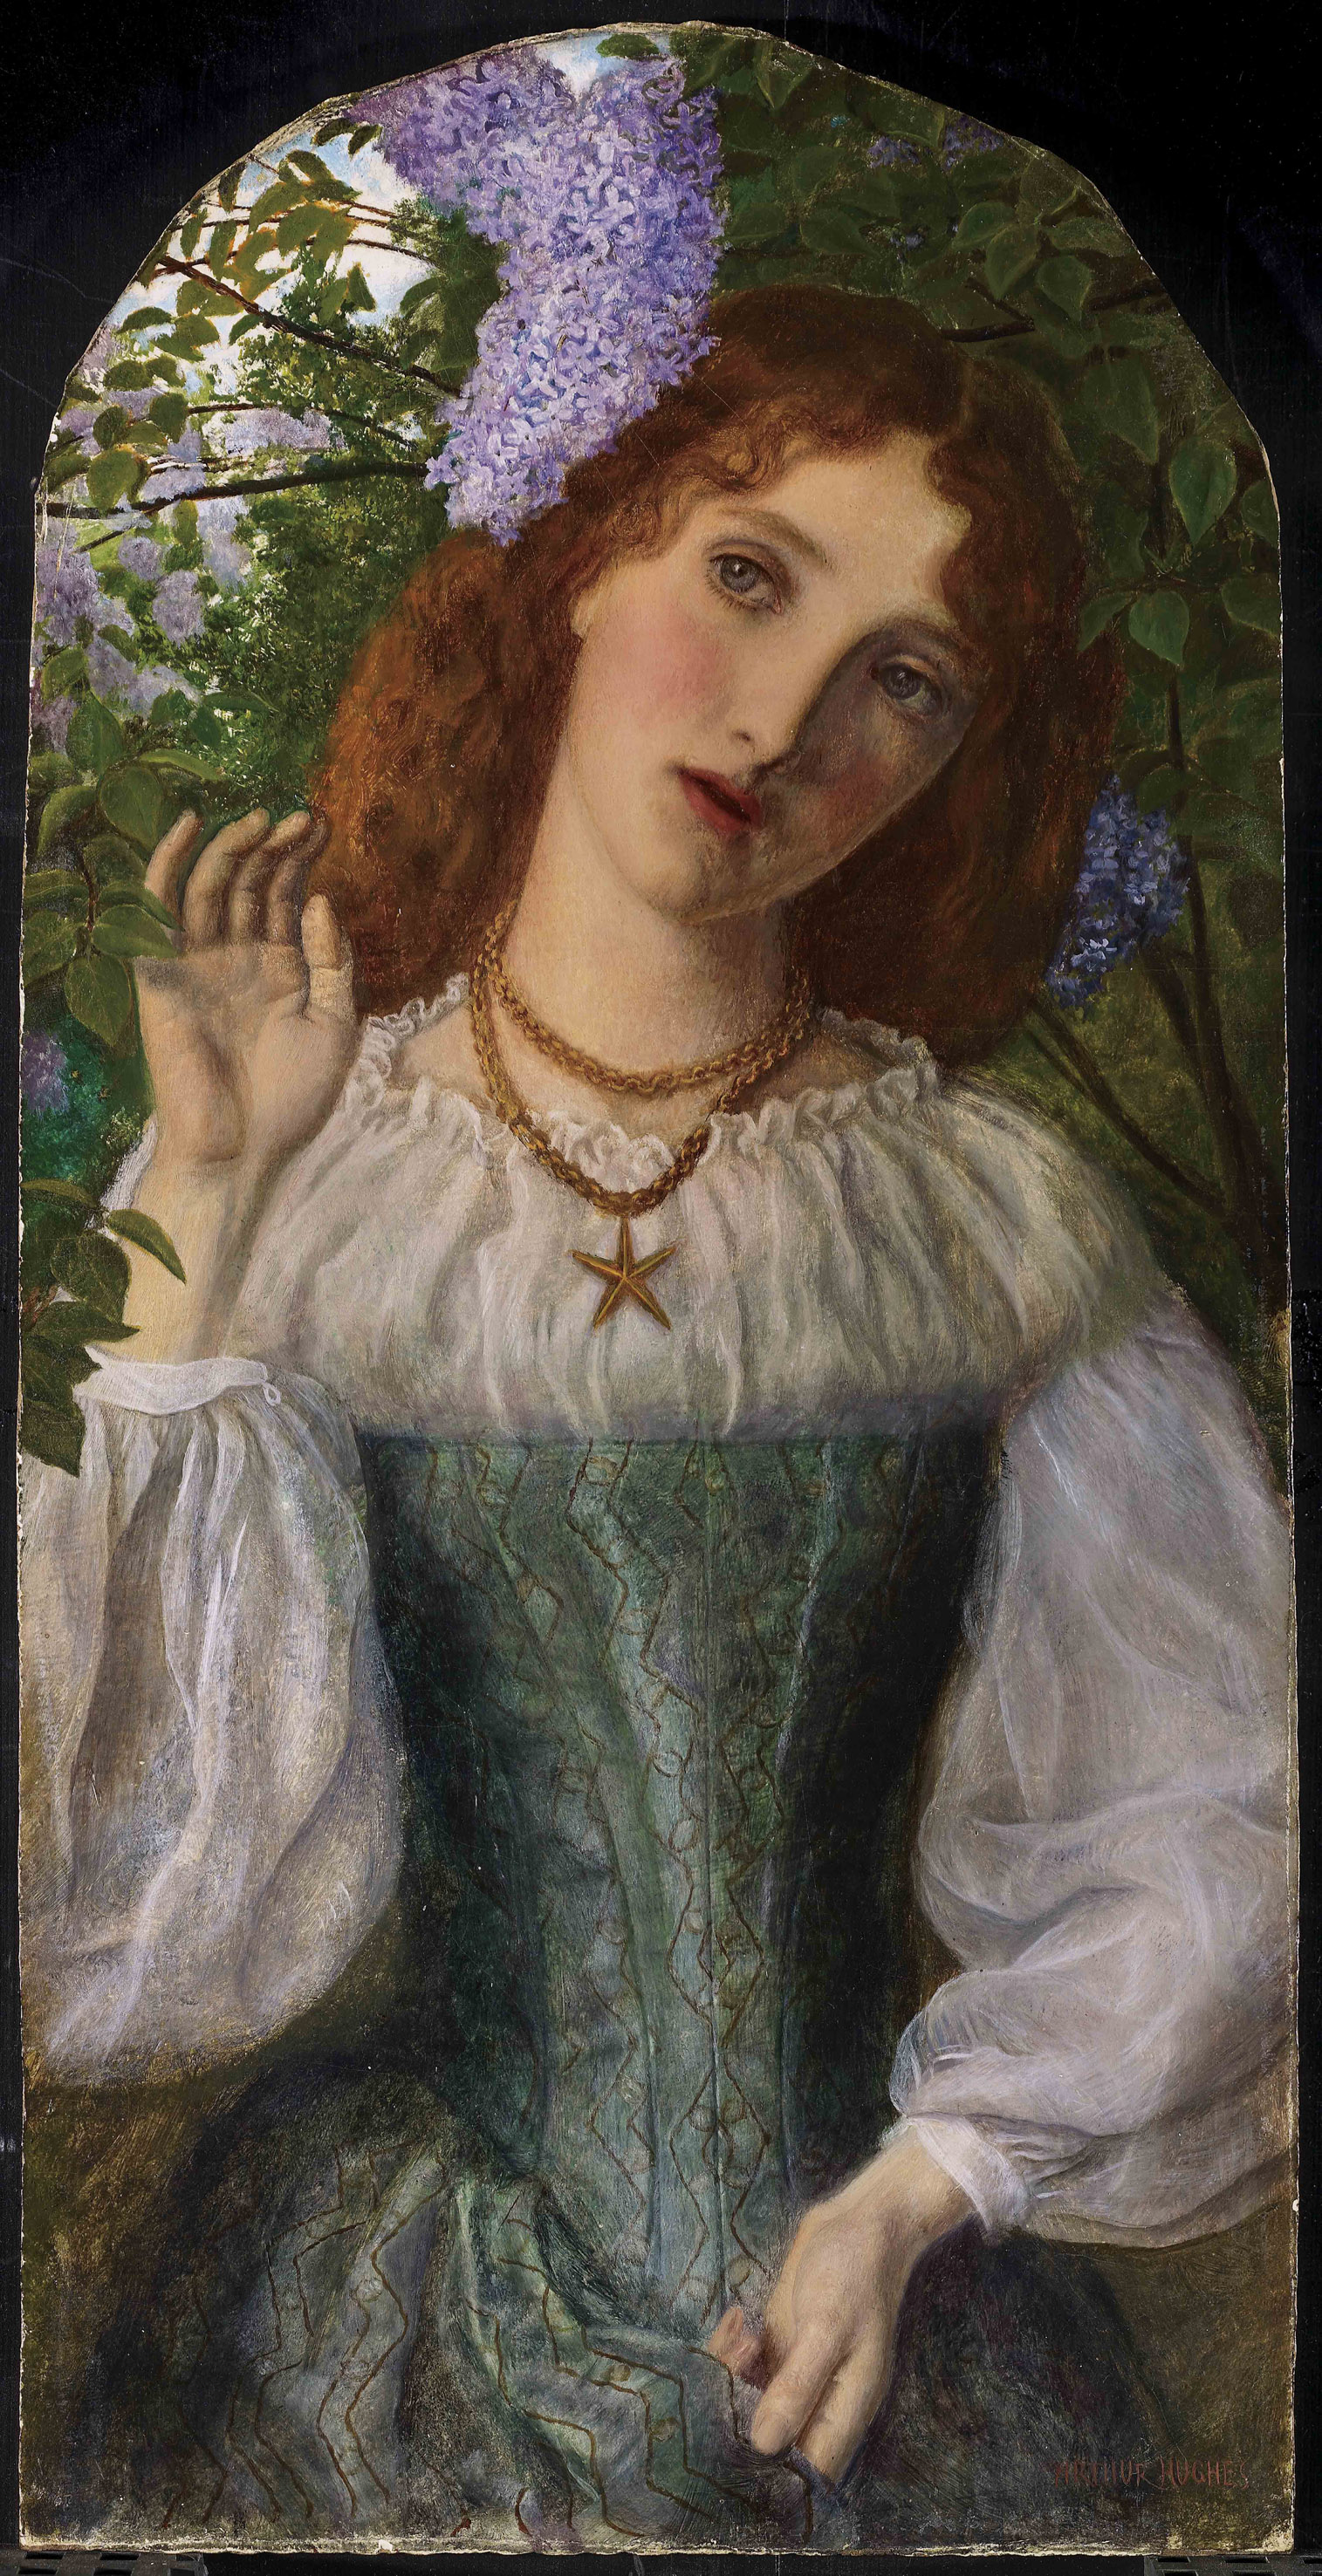 Arthur Hughes - The Lady with the Lilacs - 1863 - Art Gallery of Ontario, Toronto